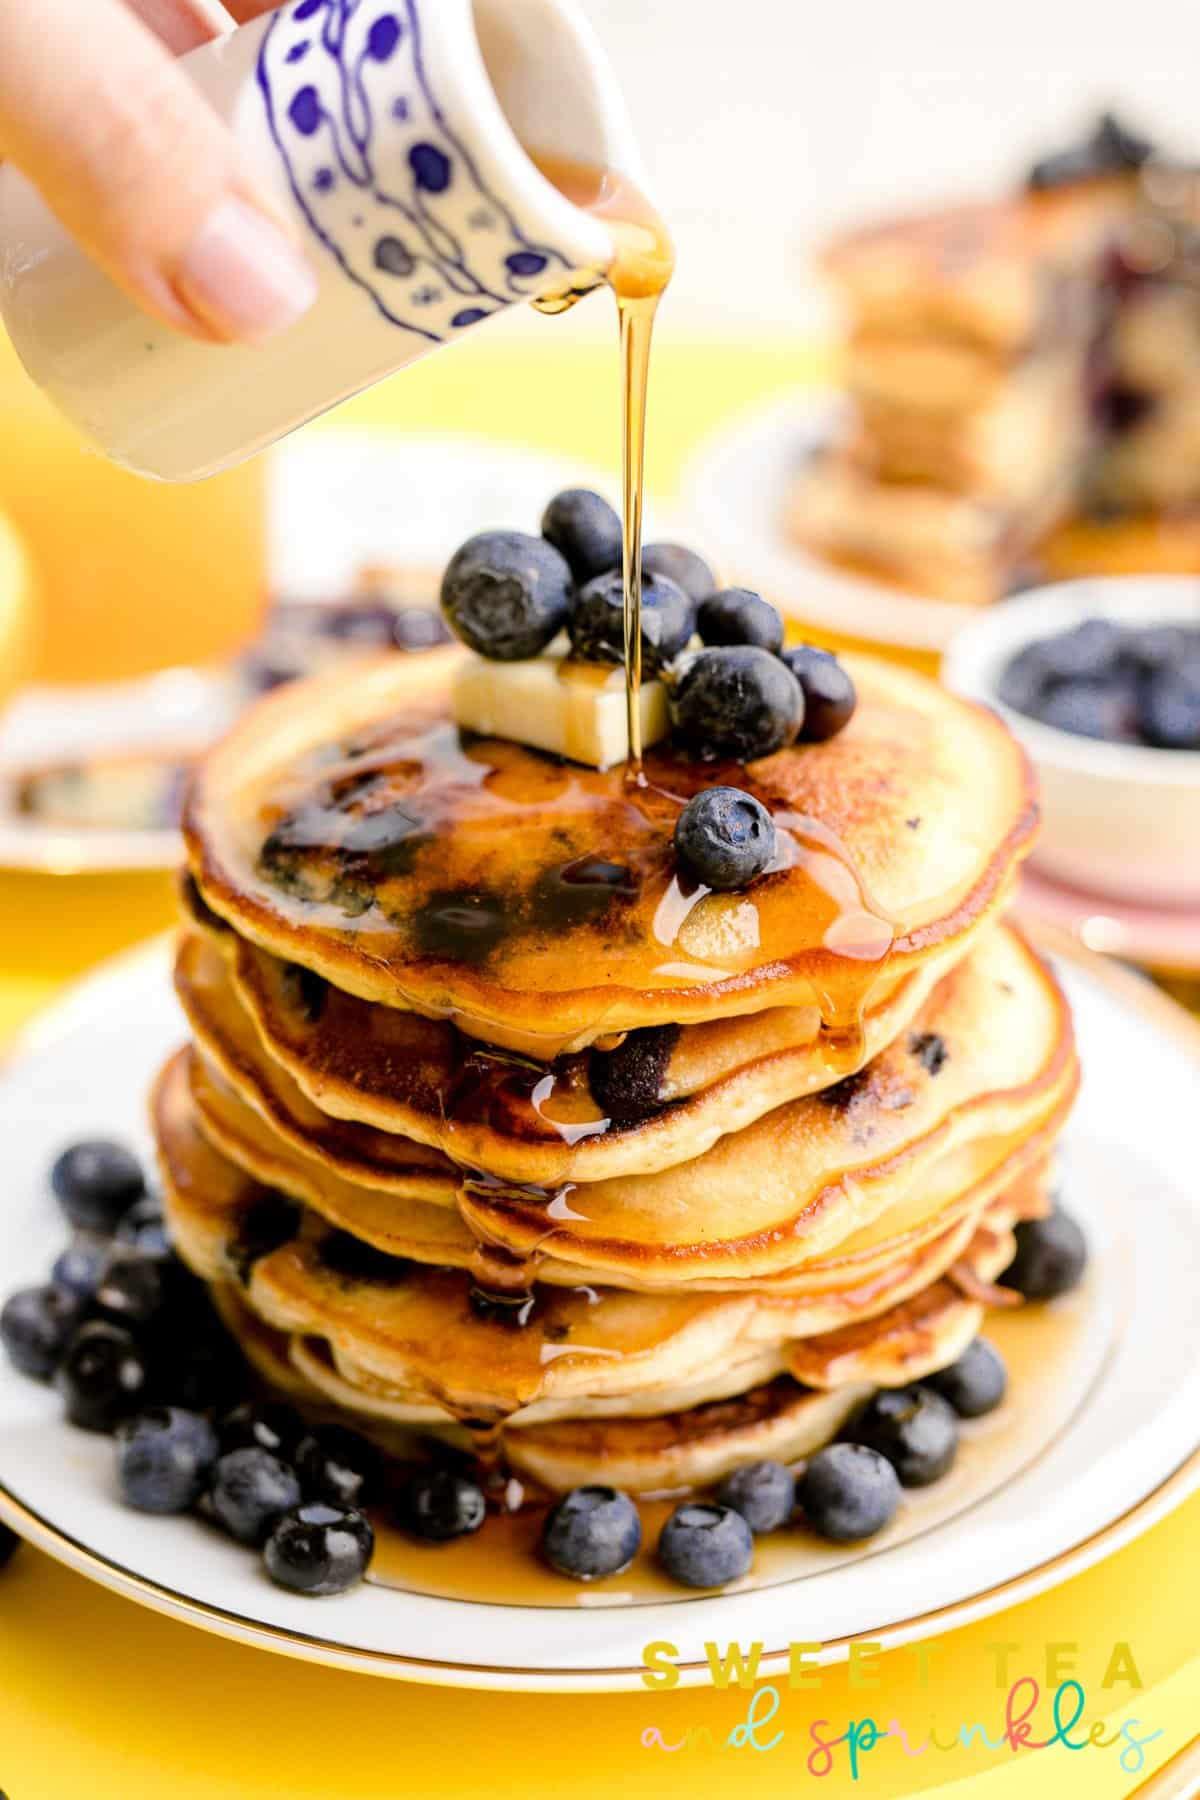 Hand pouring syrup over stacked Fluffy Blueberry Pancakes on white plate.